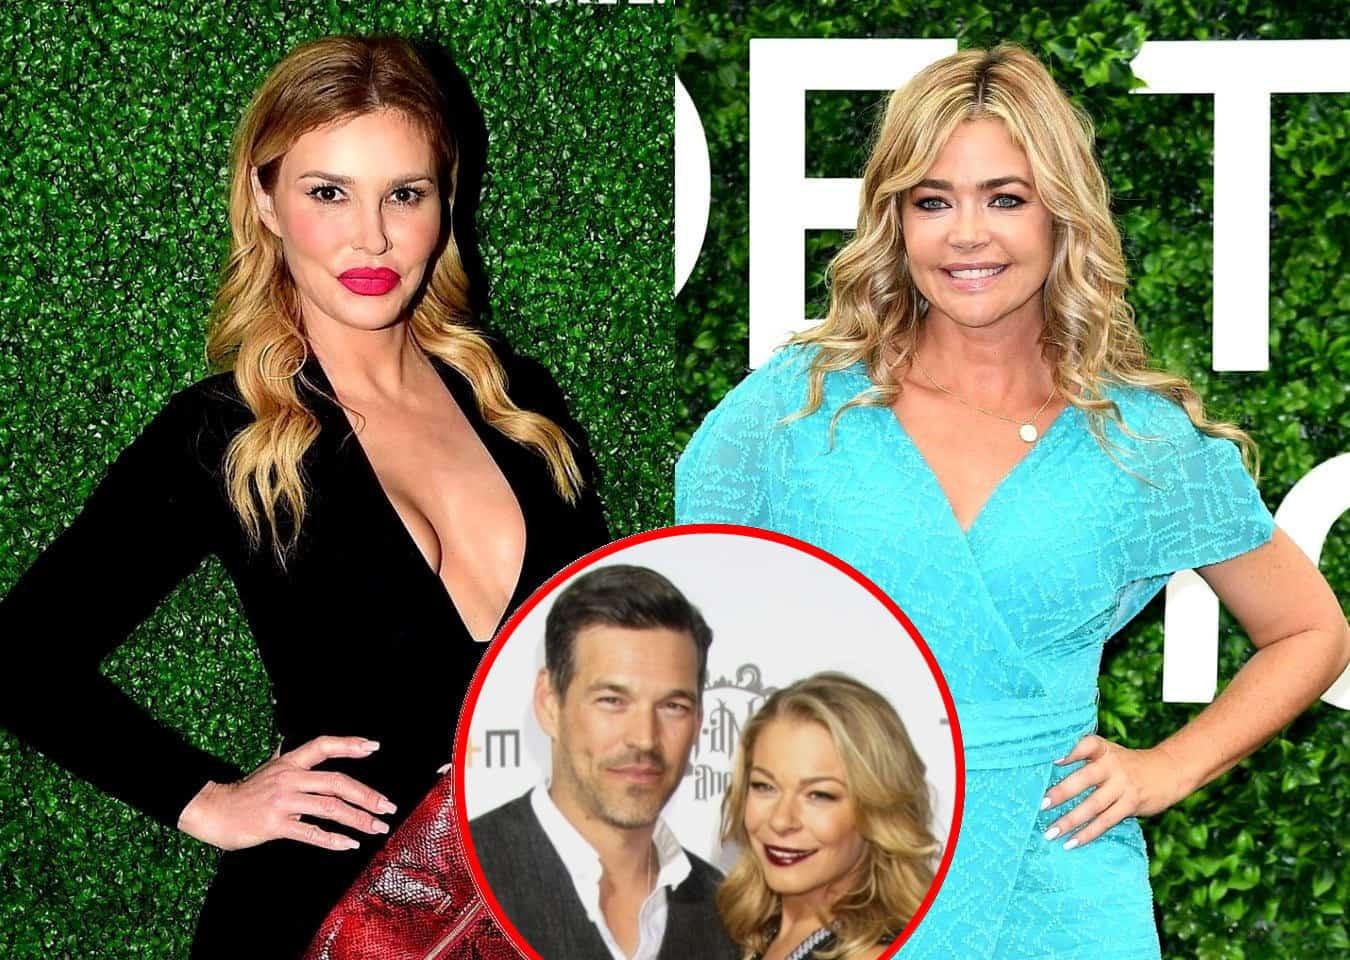 RHOBH's Brandi Glanville Shares Cryptic Posts After Affair Allegations With Denise Richards, Plus Why She Still Struggles With Ex Eddie Cibrian and LeAnn Rimes' Relationship